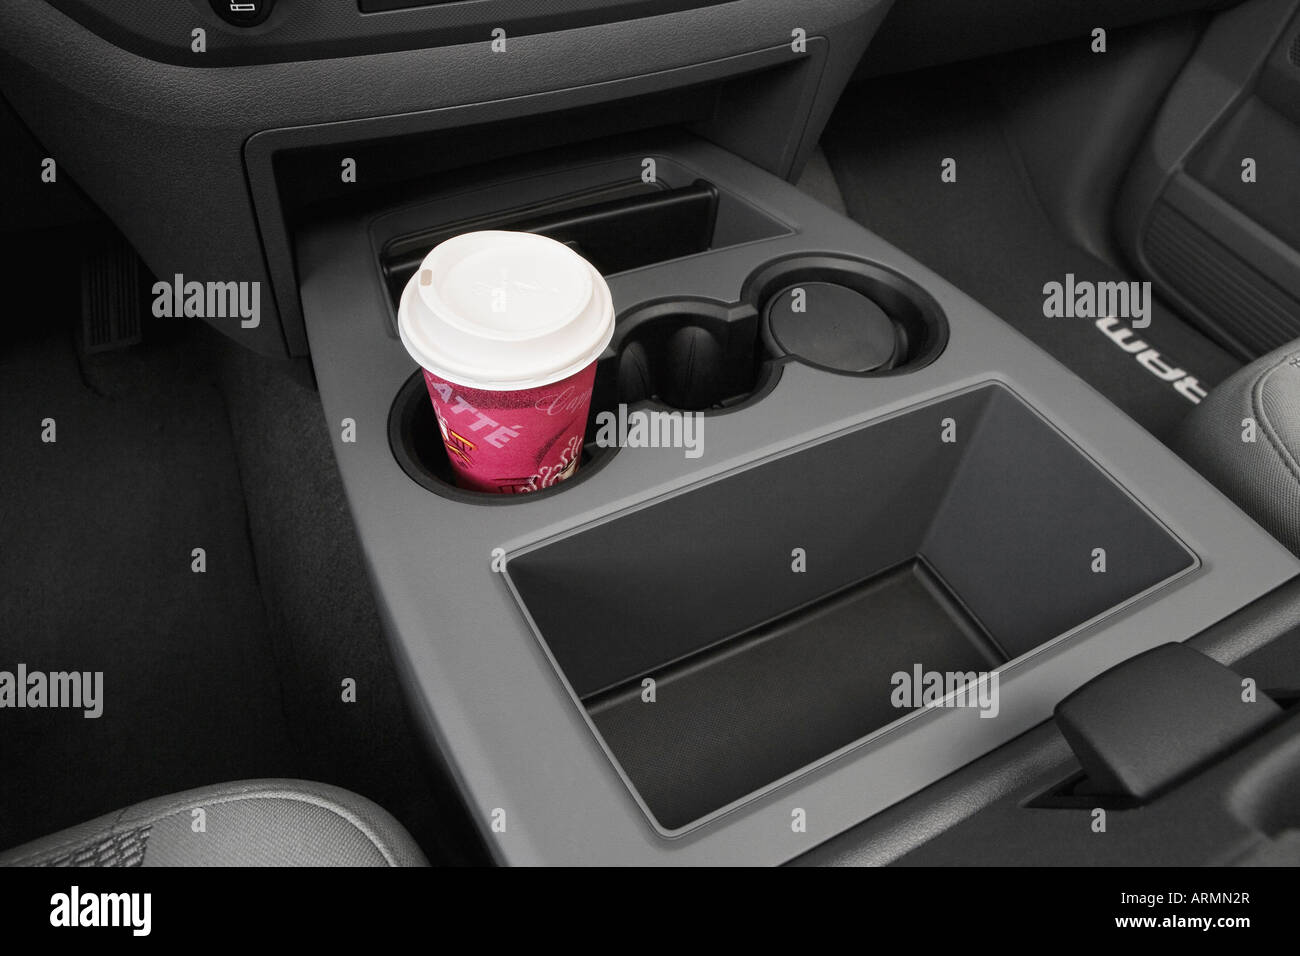 Dodge Ram Slt In Gray Cup Holder With Prop Armn R on 2008 Dodge Ram 3500